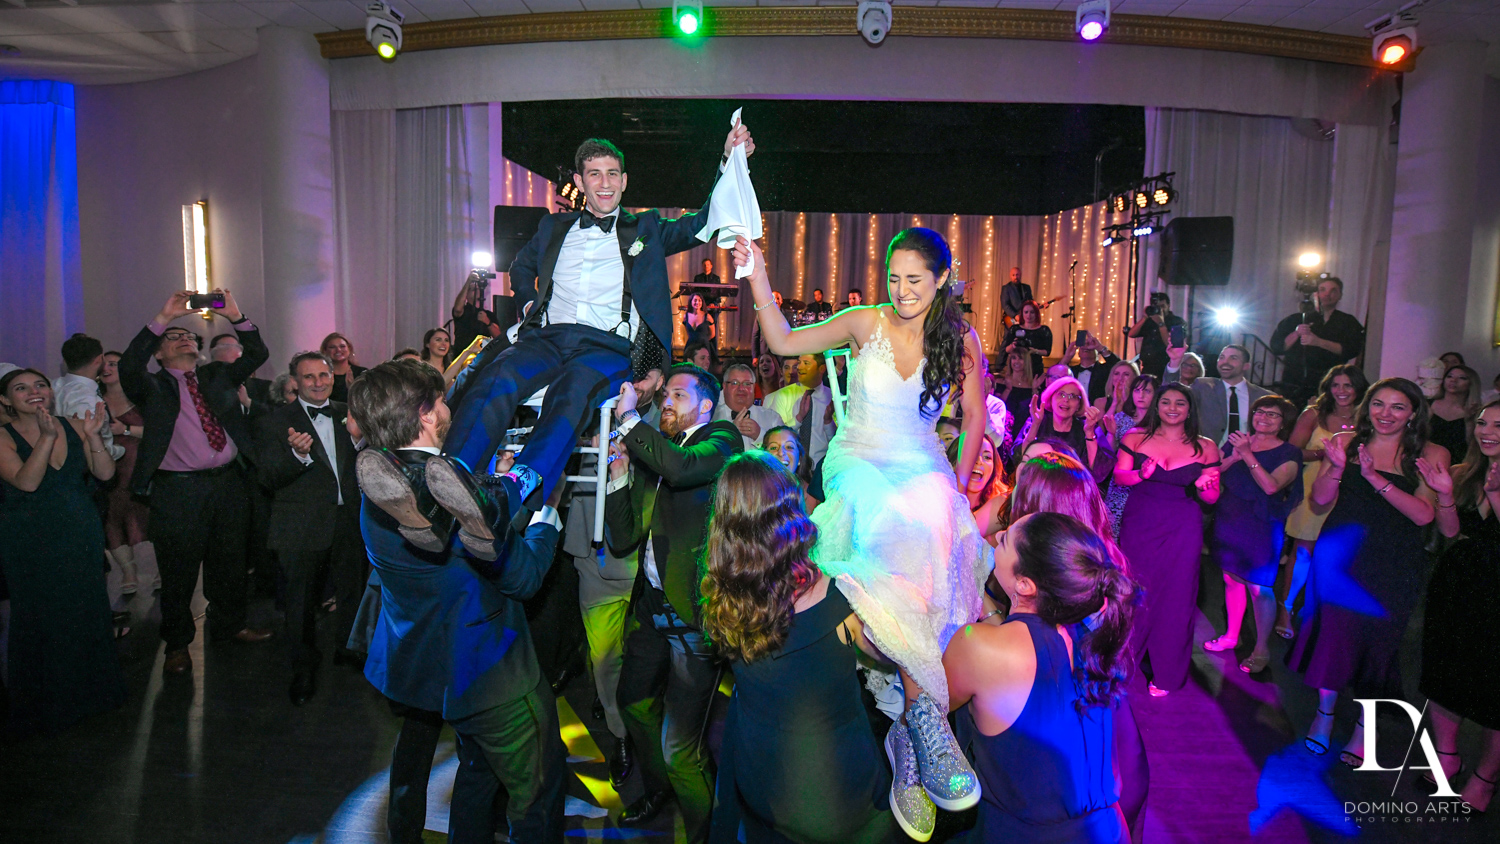 Fun hora at Classic Miami Beach Wedding at Temple Emanu-El and Emanuel Luxury Venue by Domino Arts Photography